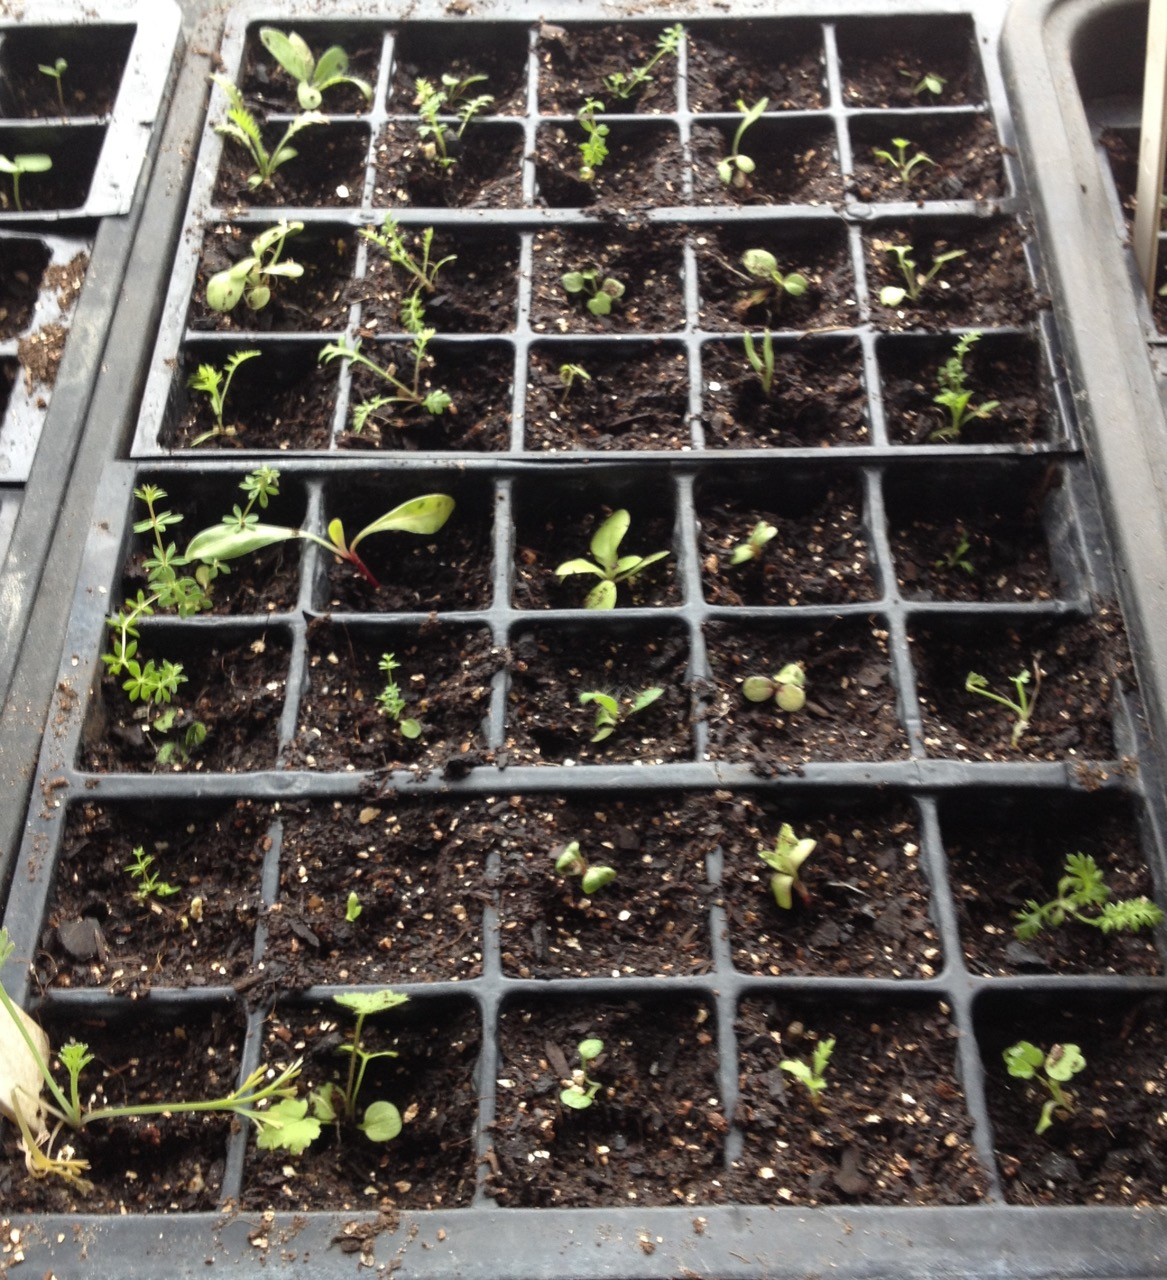 19 May 2017: Some of the seedlings that germinated from the perennial Golden Summer seedmix, started in a seed tray indoors (sterile compost). Some were larger and potted up (but that photo was rather out of focus!). They seem similar to the ones sown in situ.